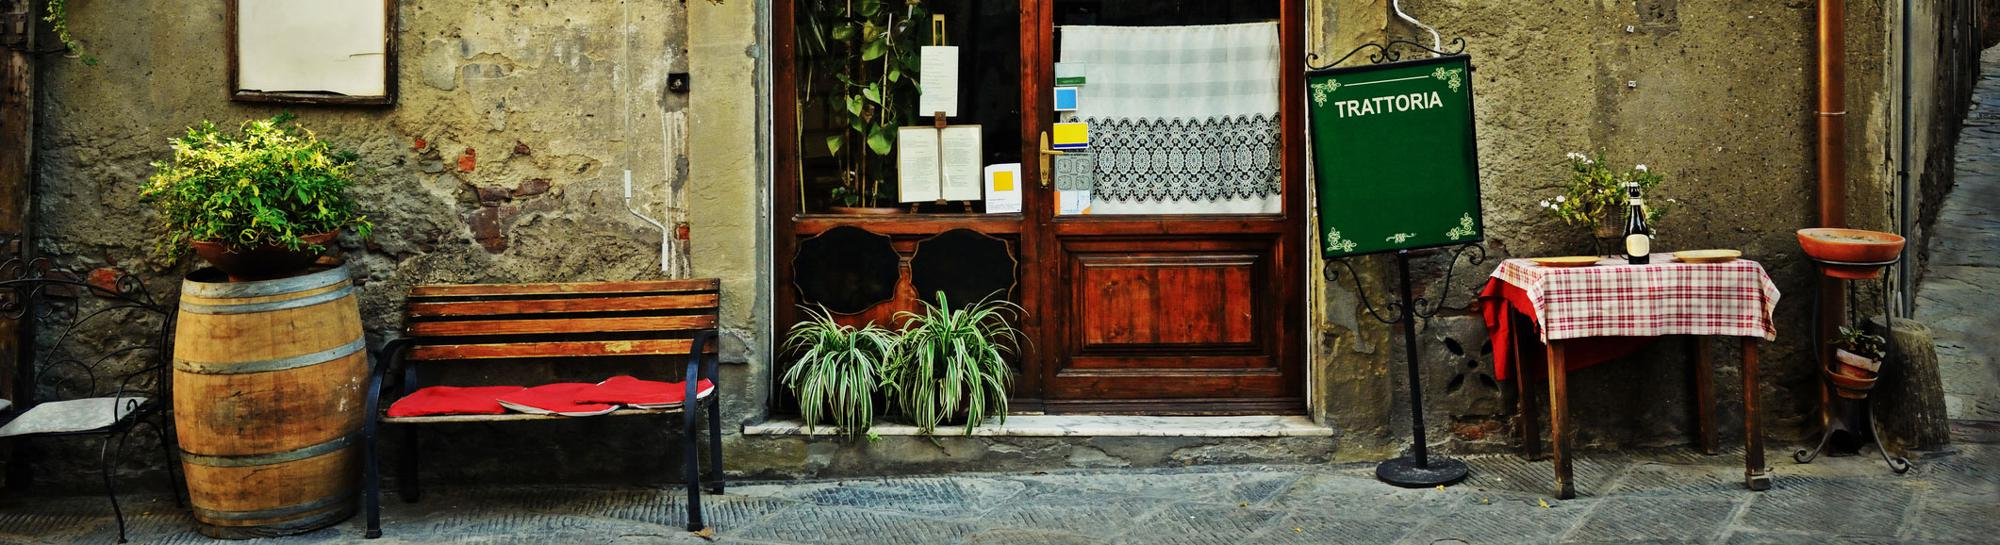 Image of store front in Italy.